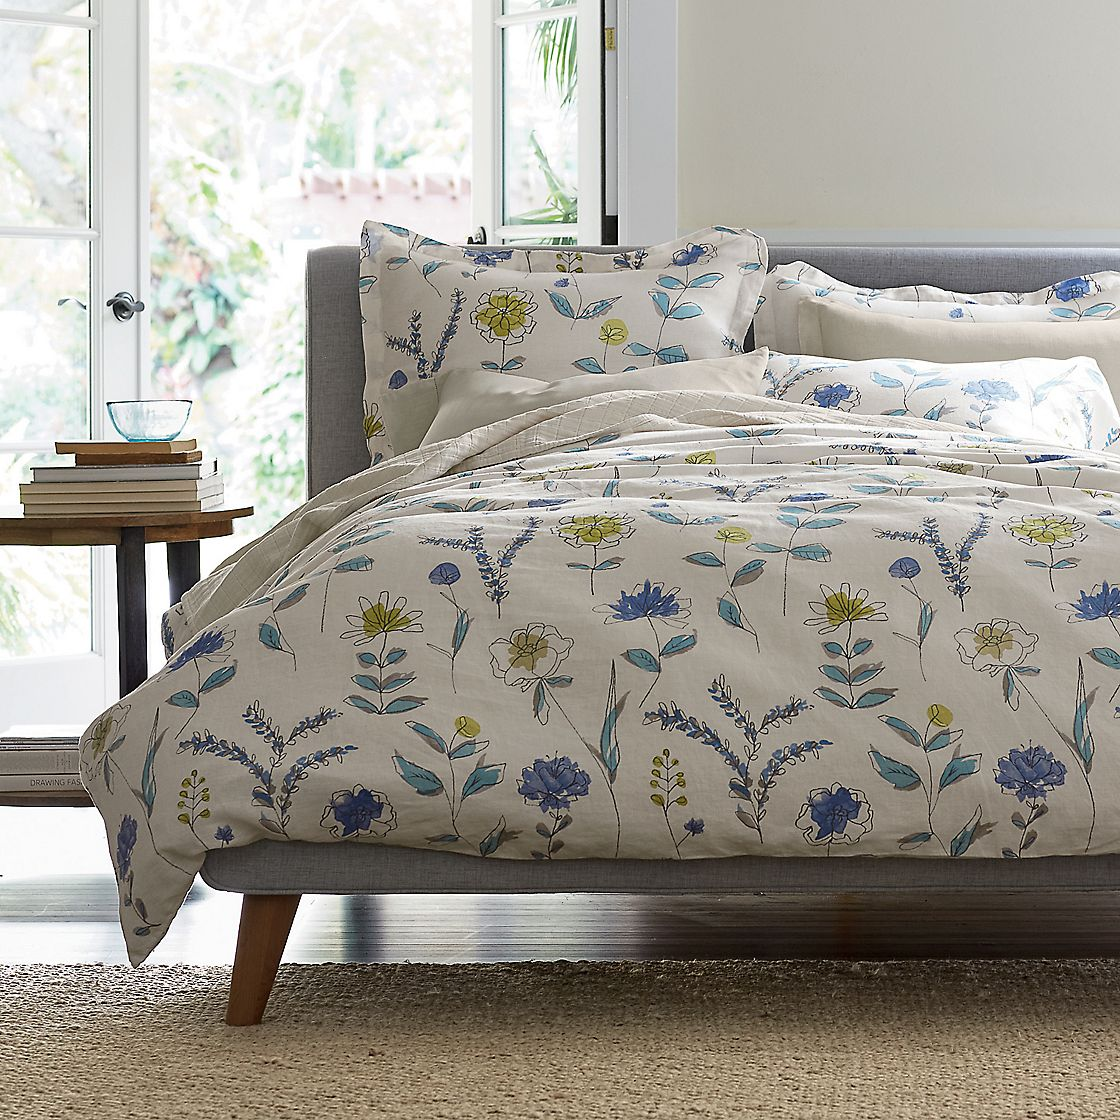 Dayton Floral Linen Sheets Amp Bedding Set The Company Store